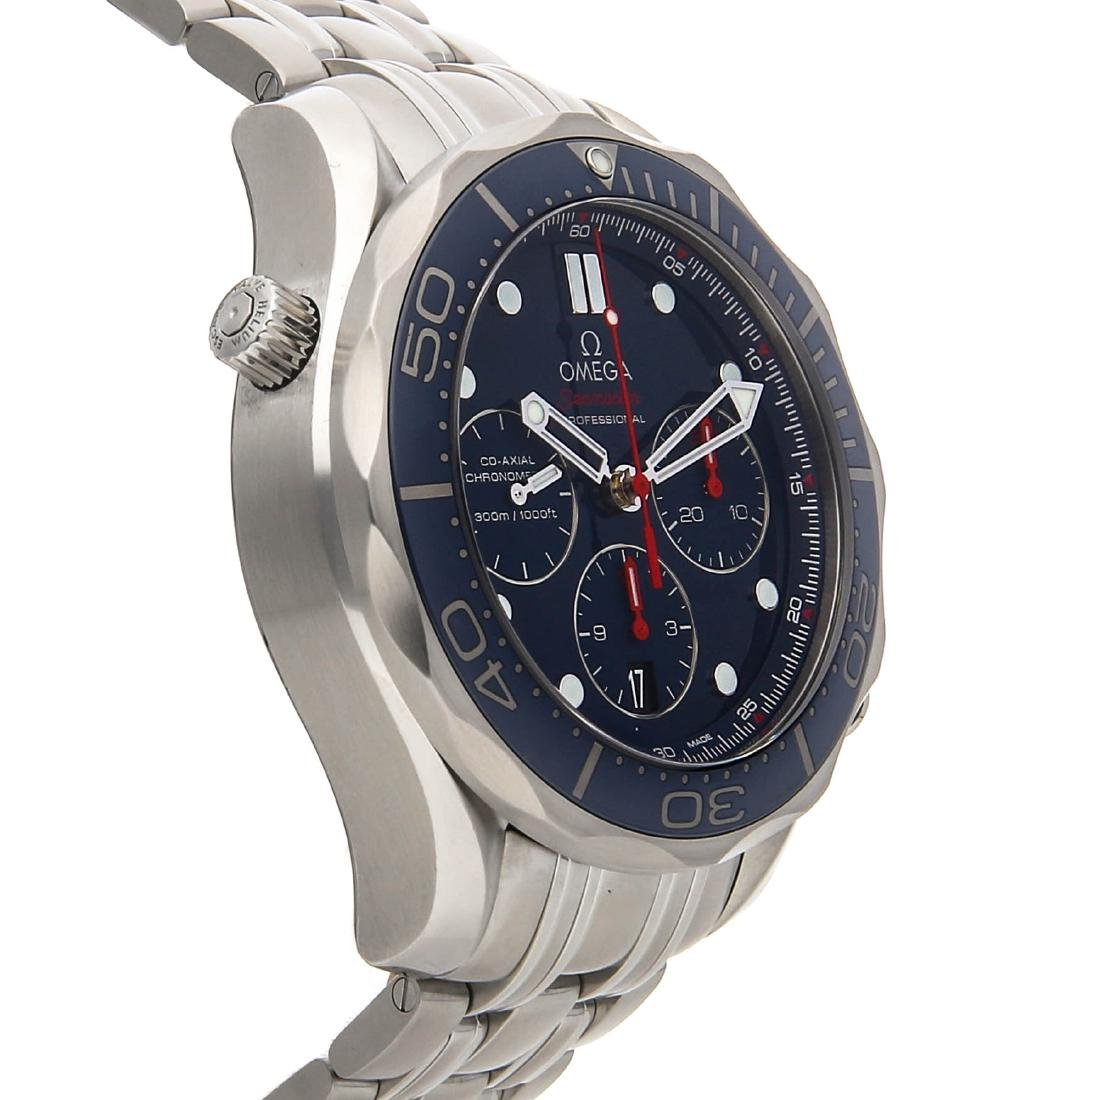 OMEGA SEAMASTER DIVER 300M CO-AXIAL CHRONOGRAPH - 3